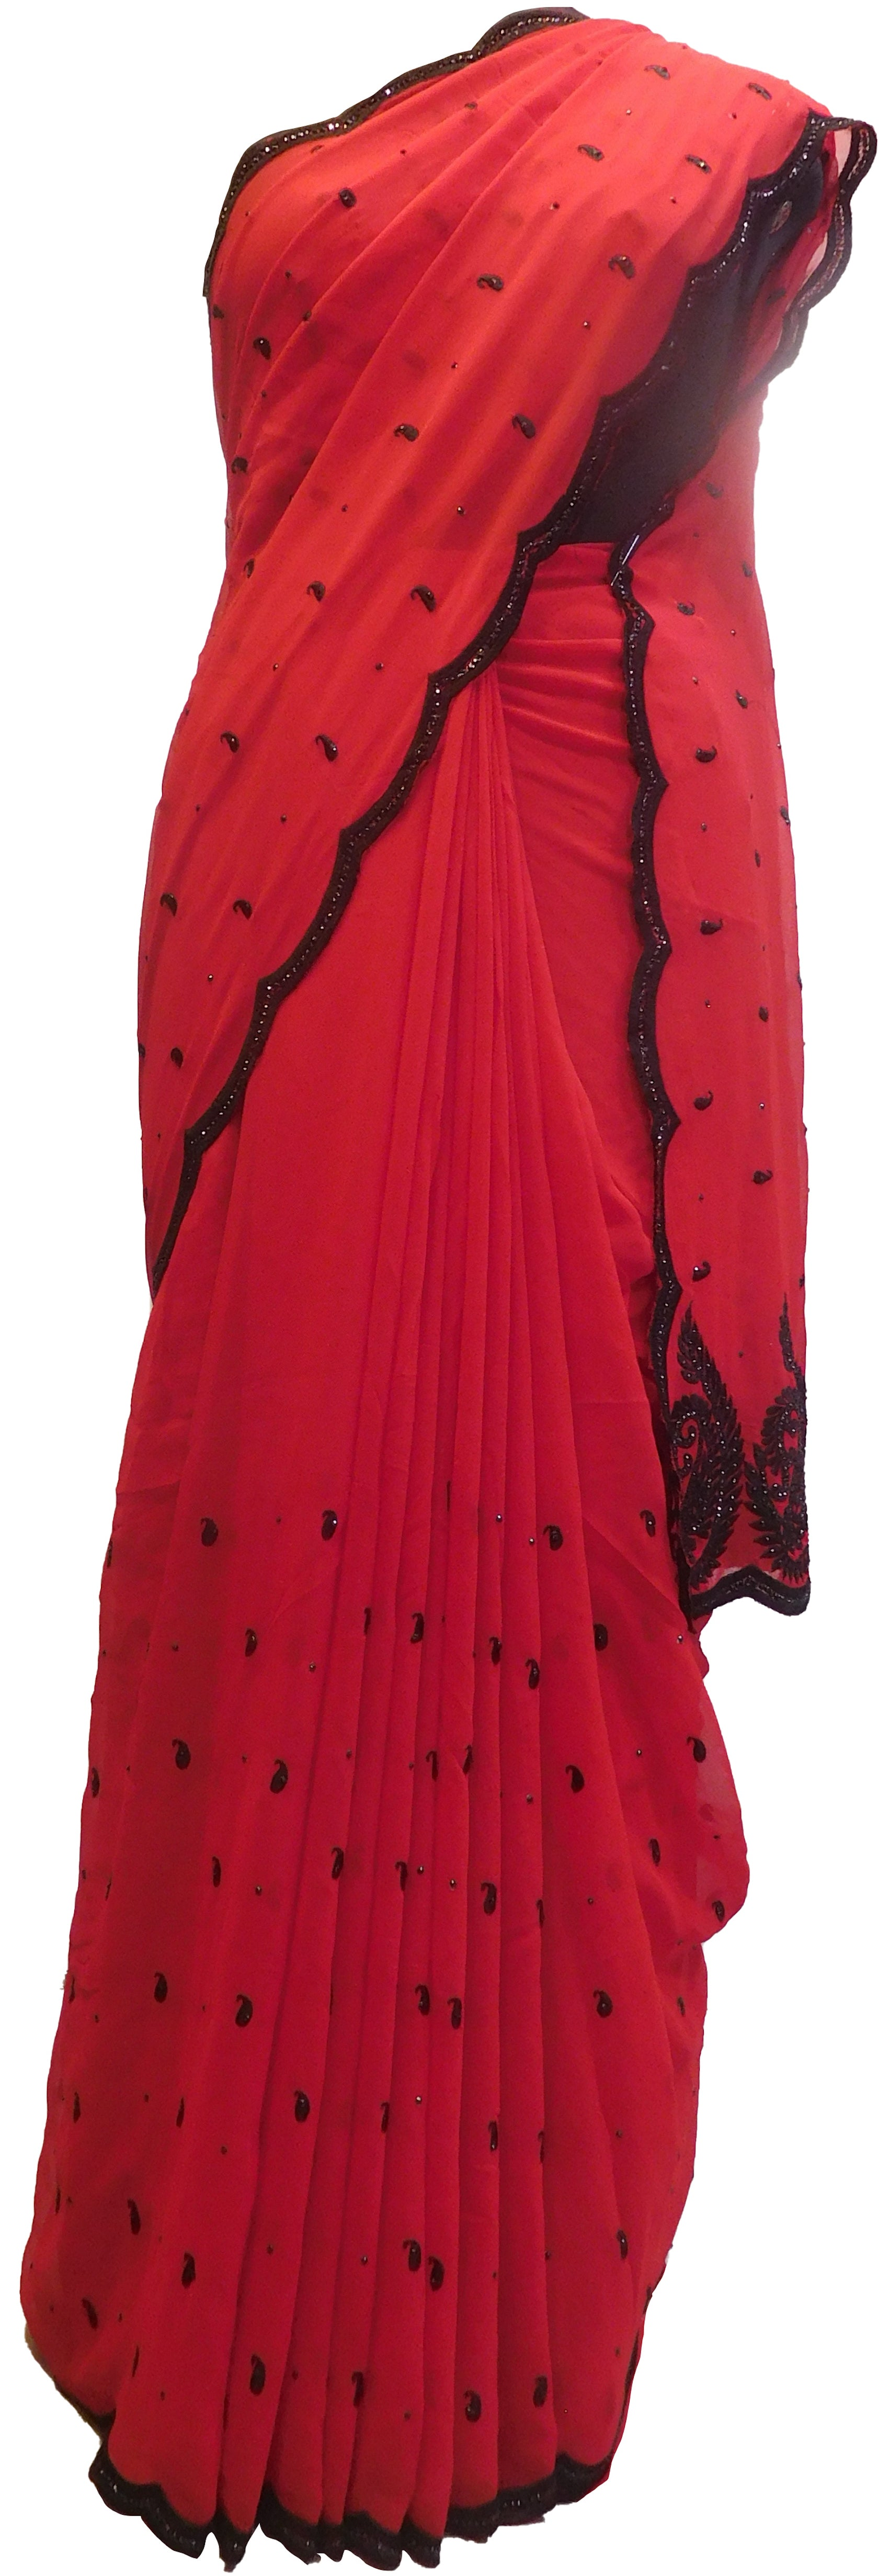 SMSAREE Red Designer Wedding Partywear Georgette Thread & Stone  Hand Embroidery Work Bridal Saree Sari With Blouse Piece E577